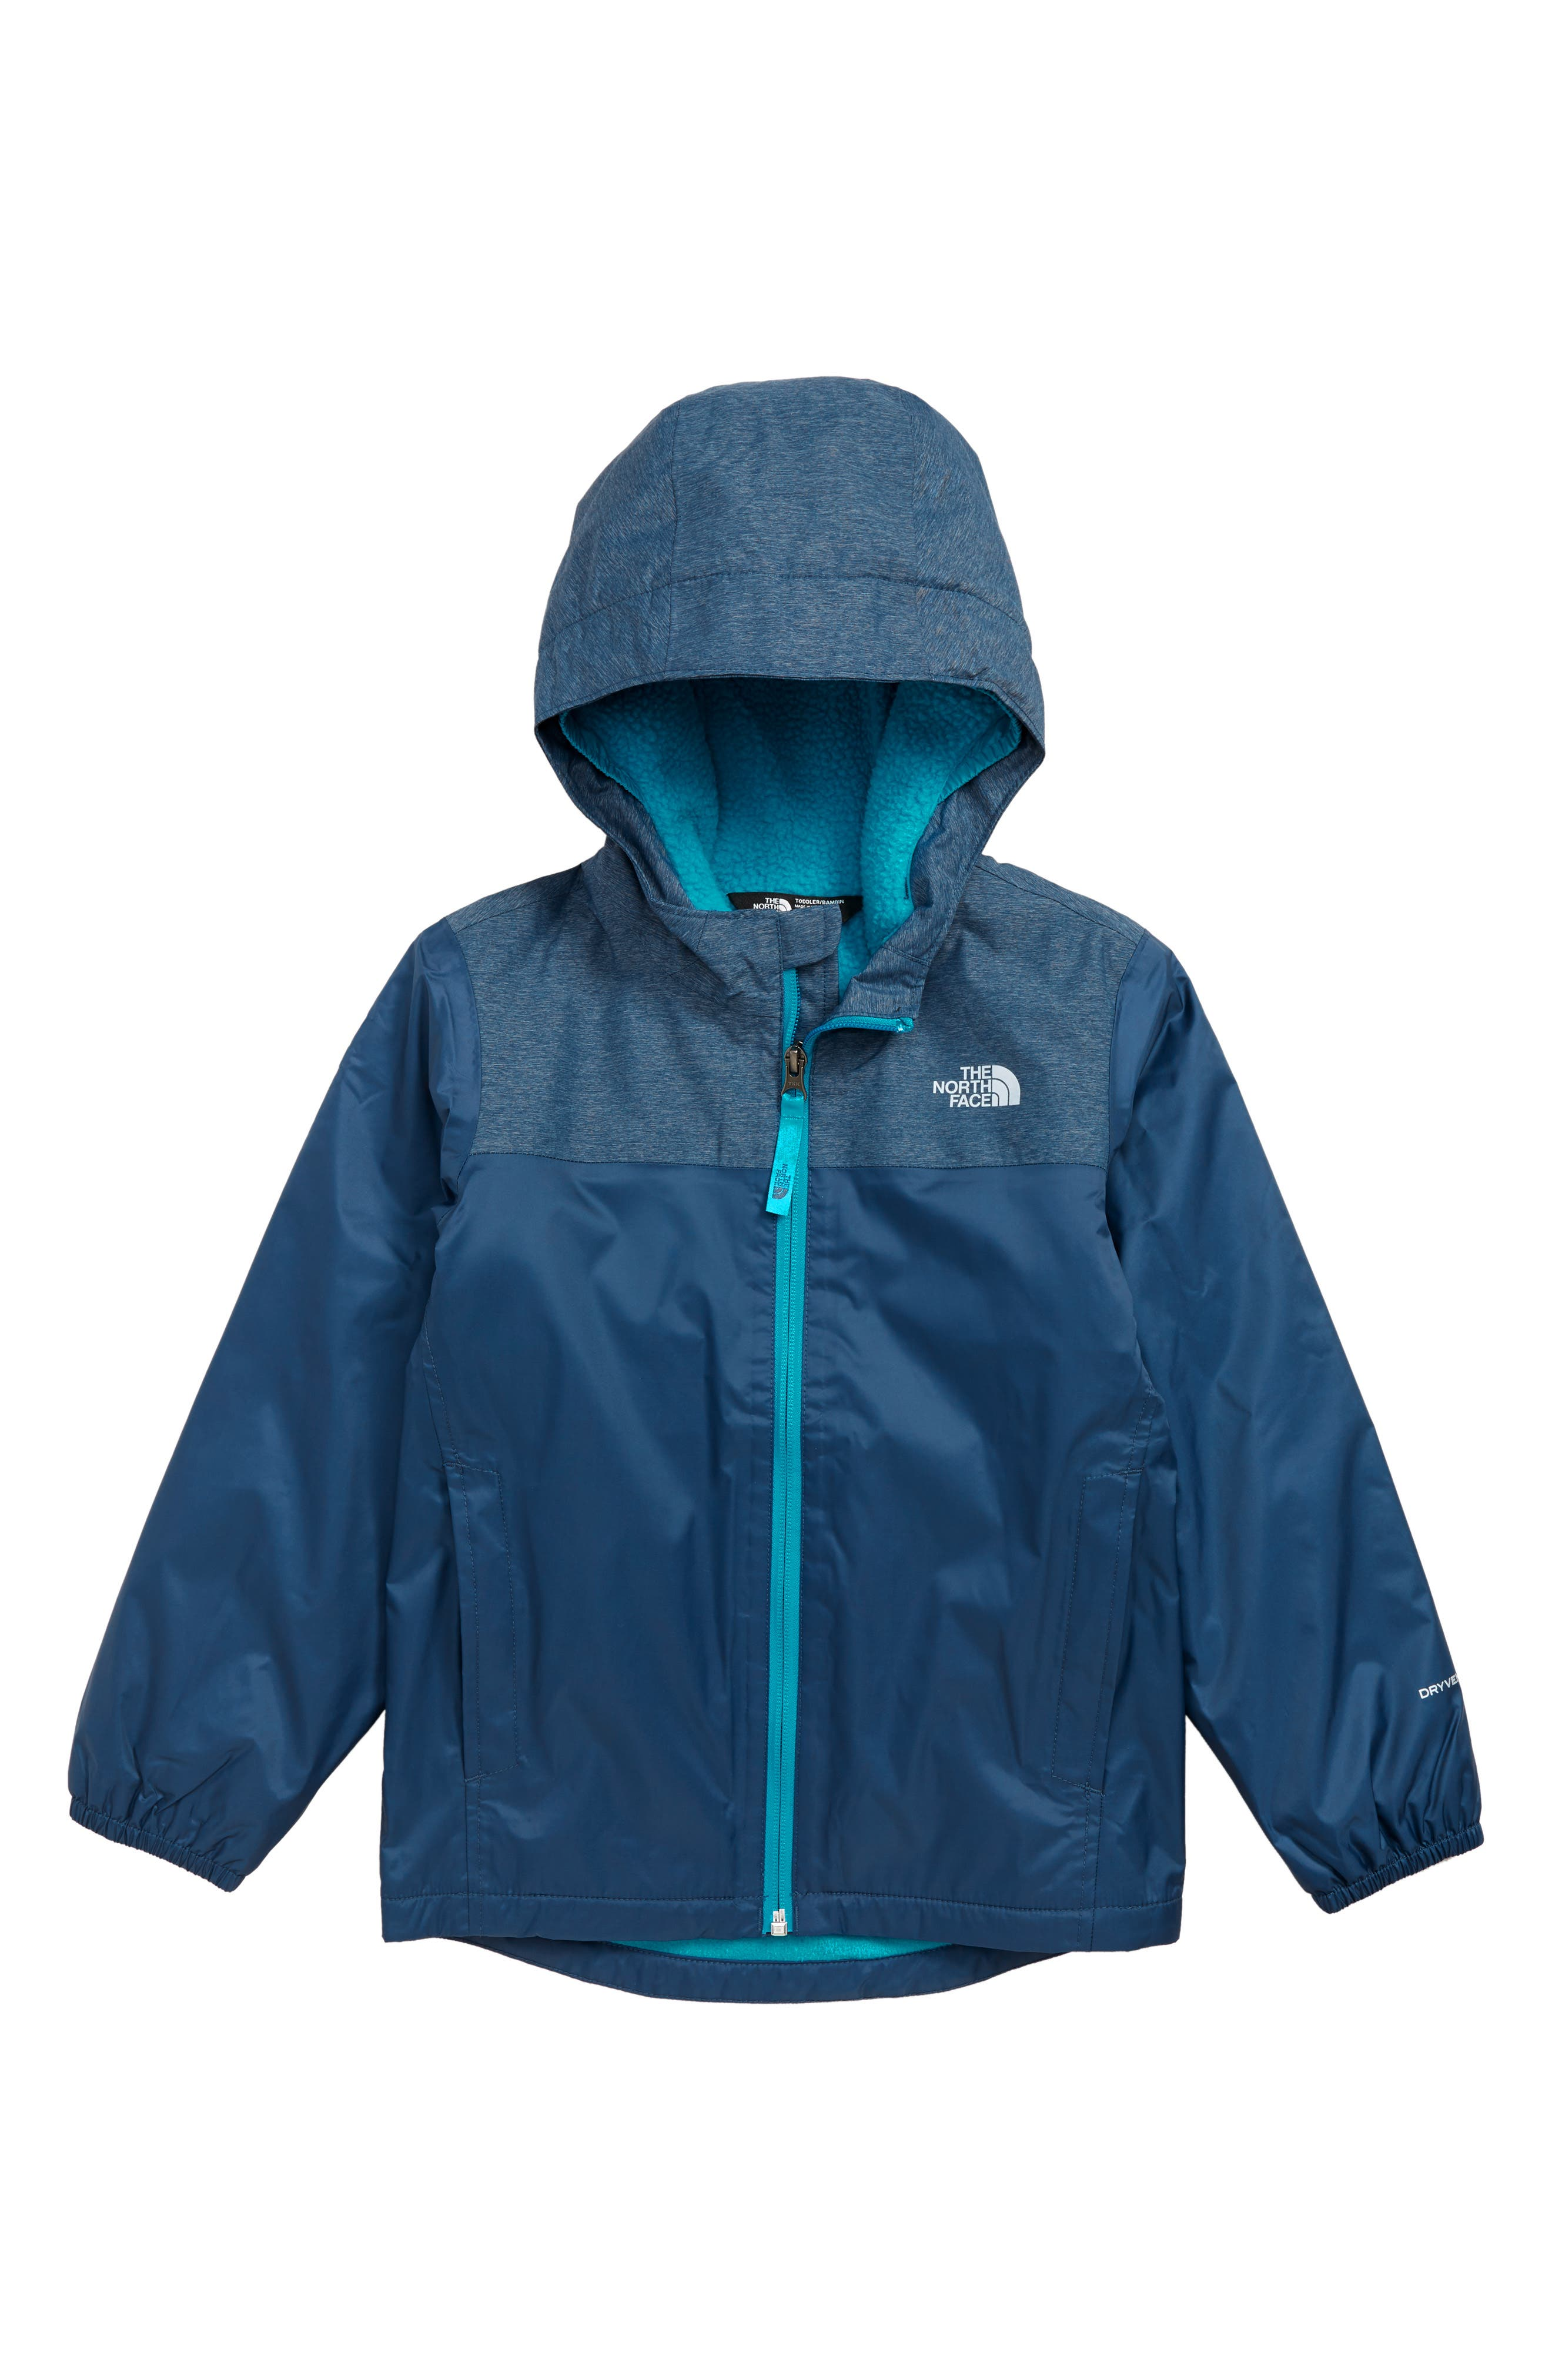 Toddler Boys The North Face Warm Storm Jacket Size 3T  Blue